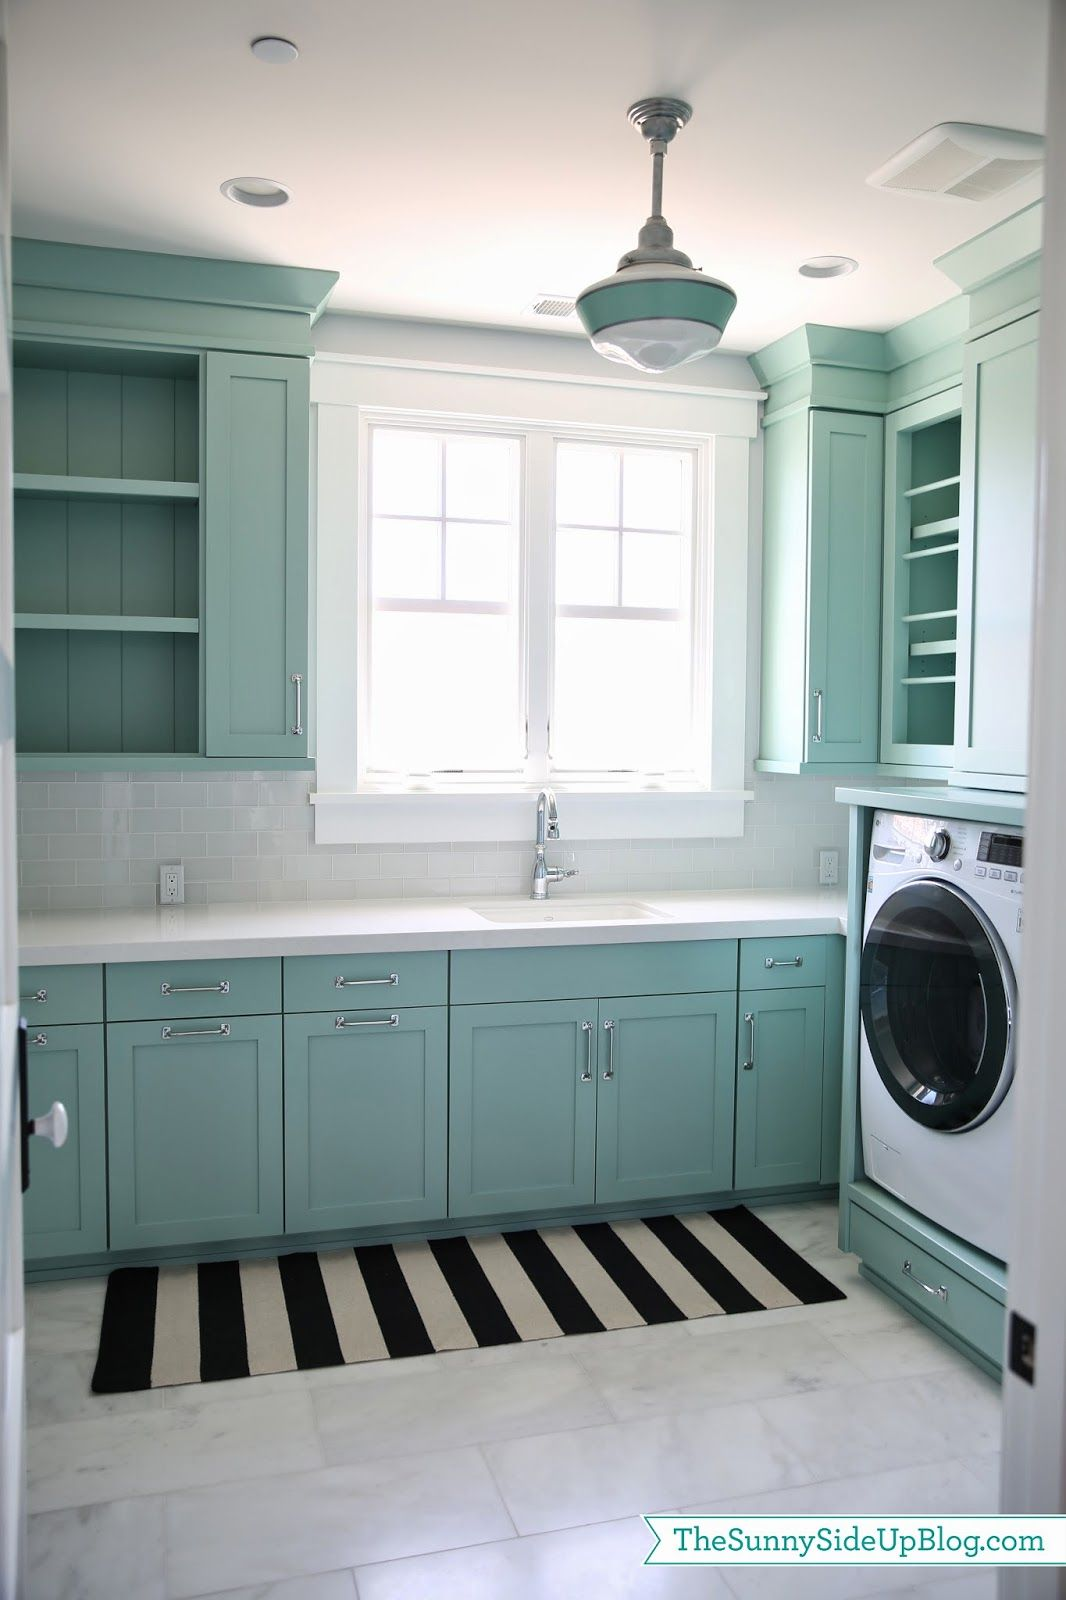 Laundry Room Rugs The Sunny Side Up Blog Teal Laundry Rooms